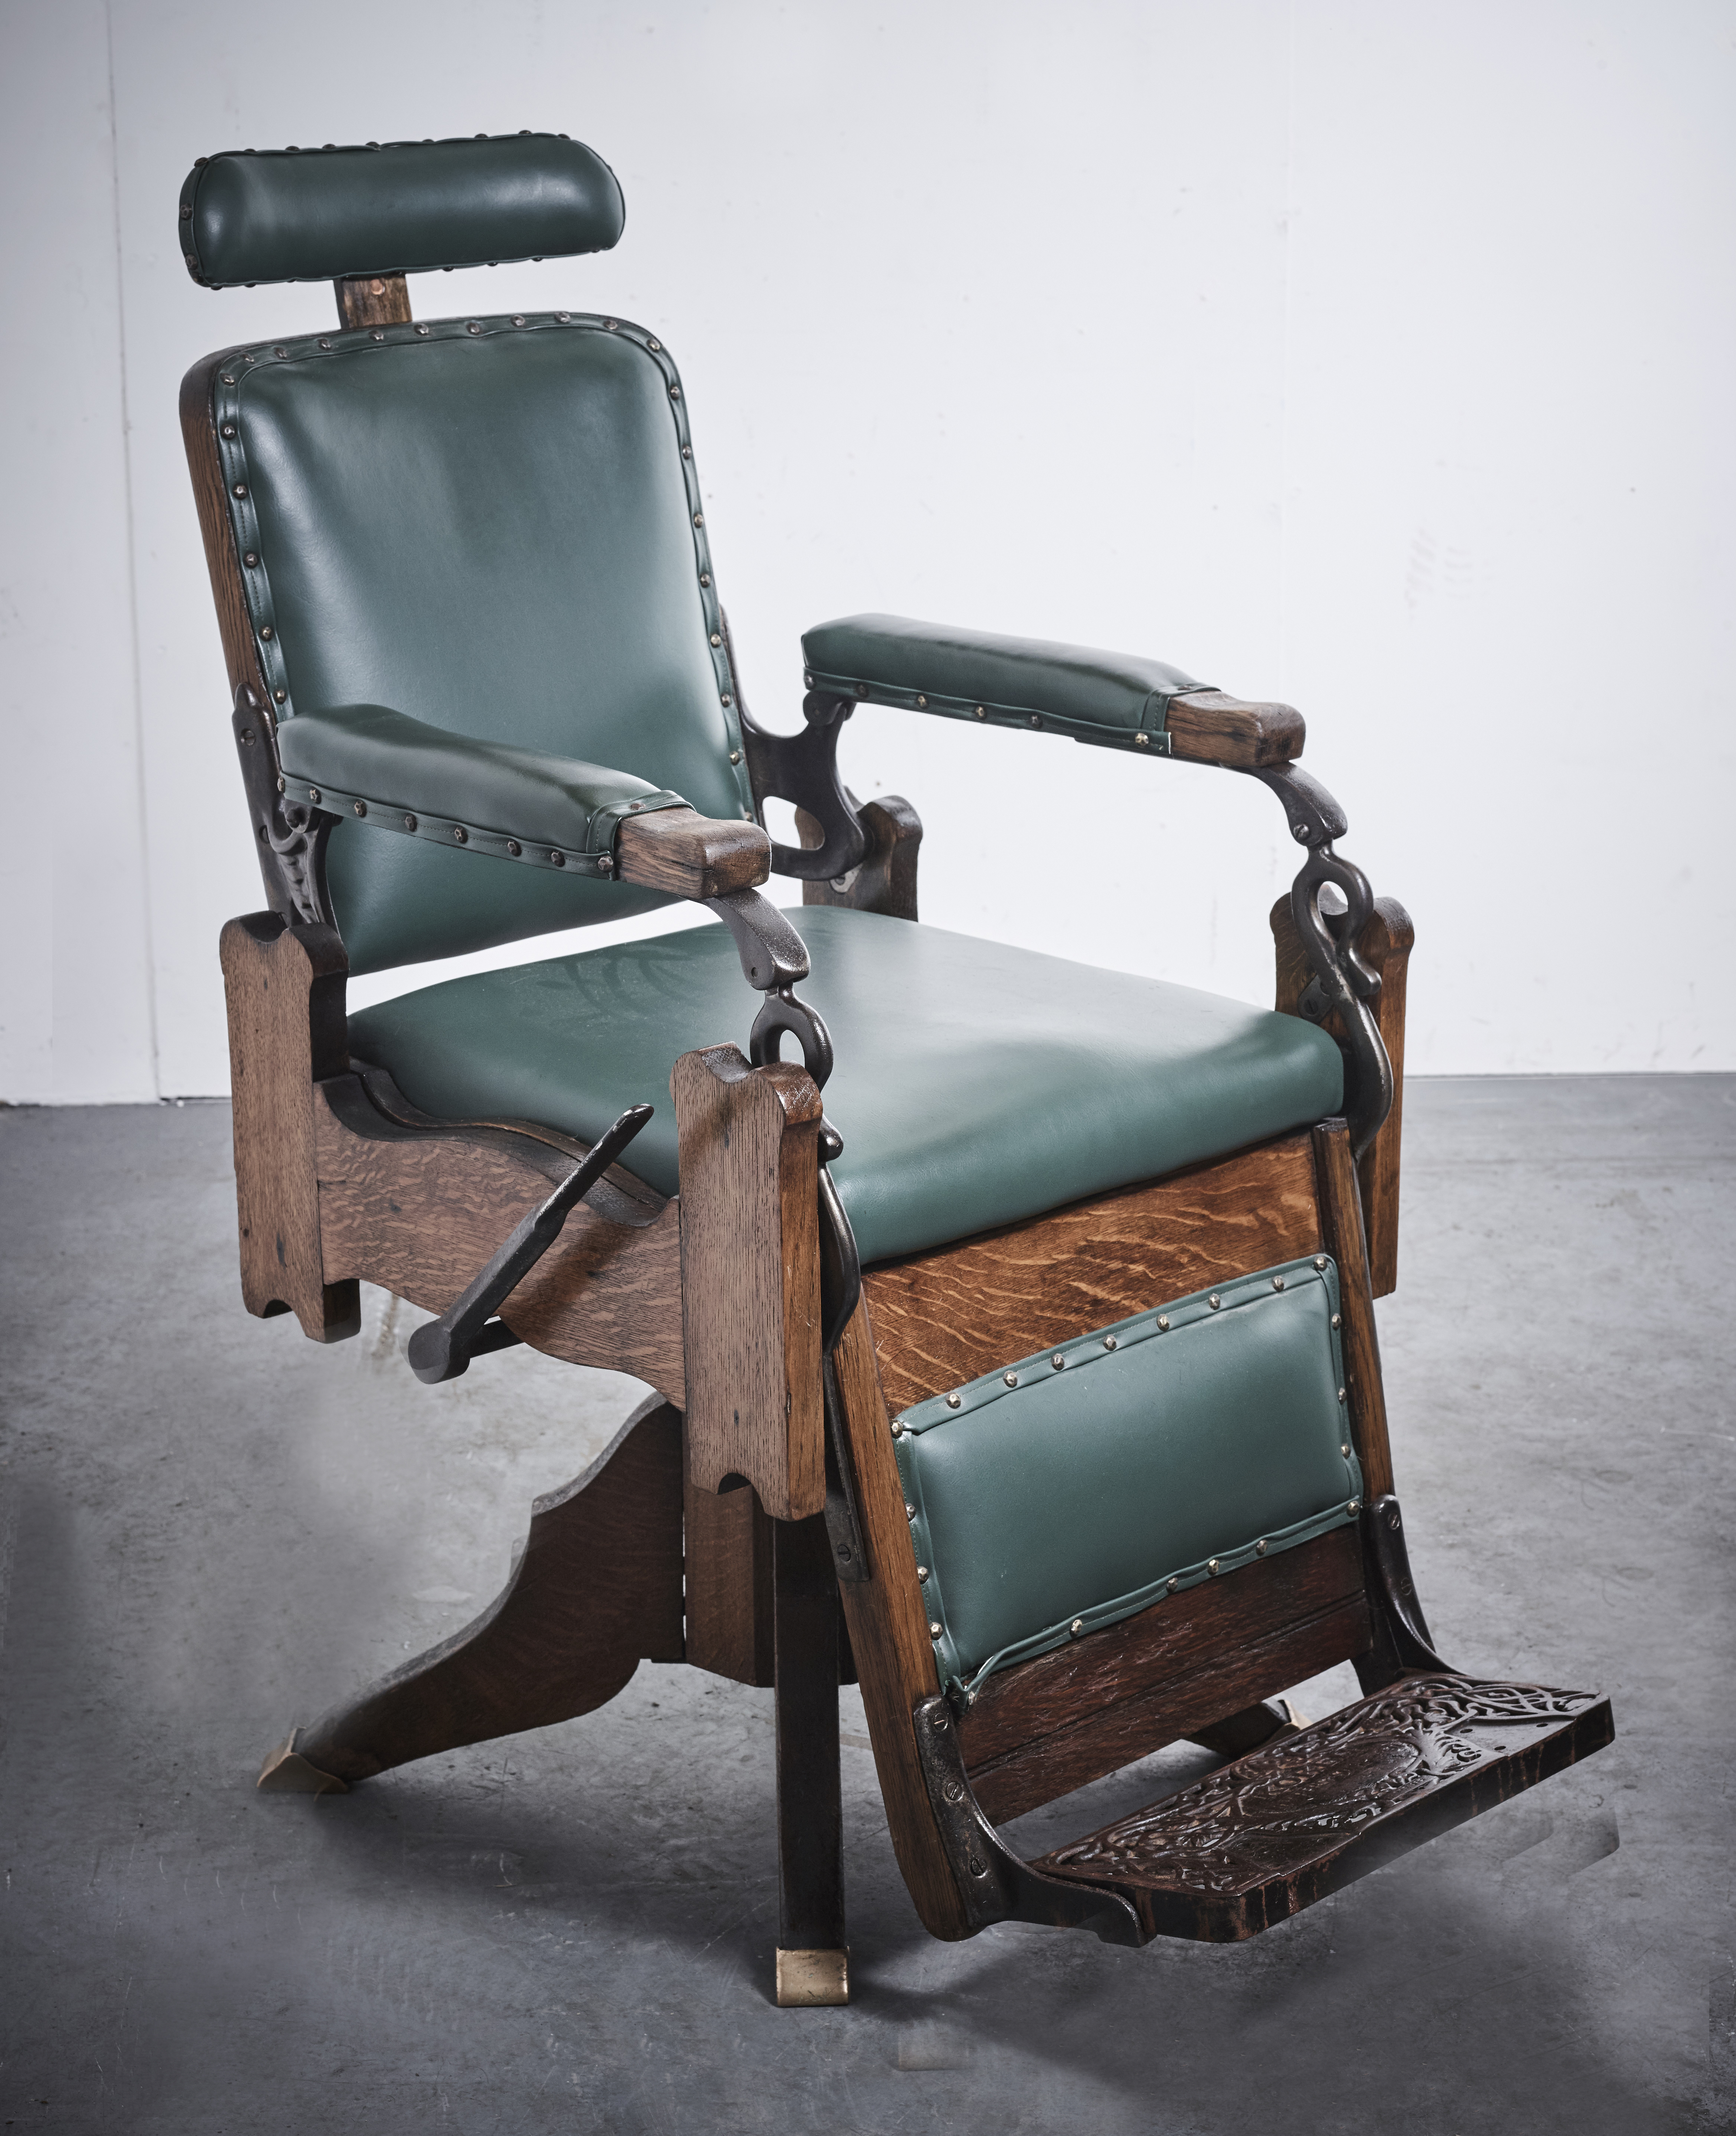 Old Barber Chairs >> Vintage Antique Wooden Koken Barber Chair Vin192a